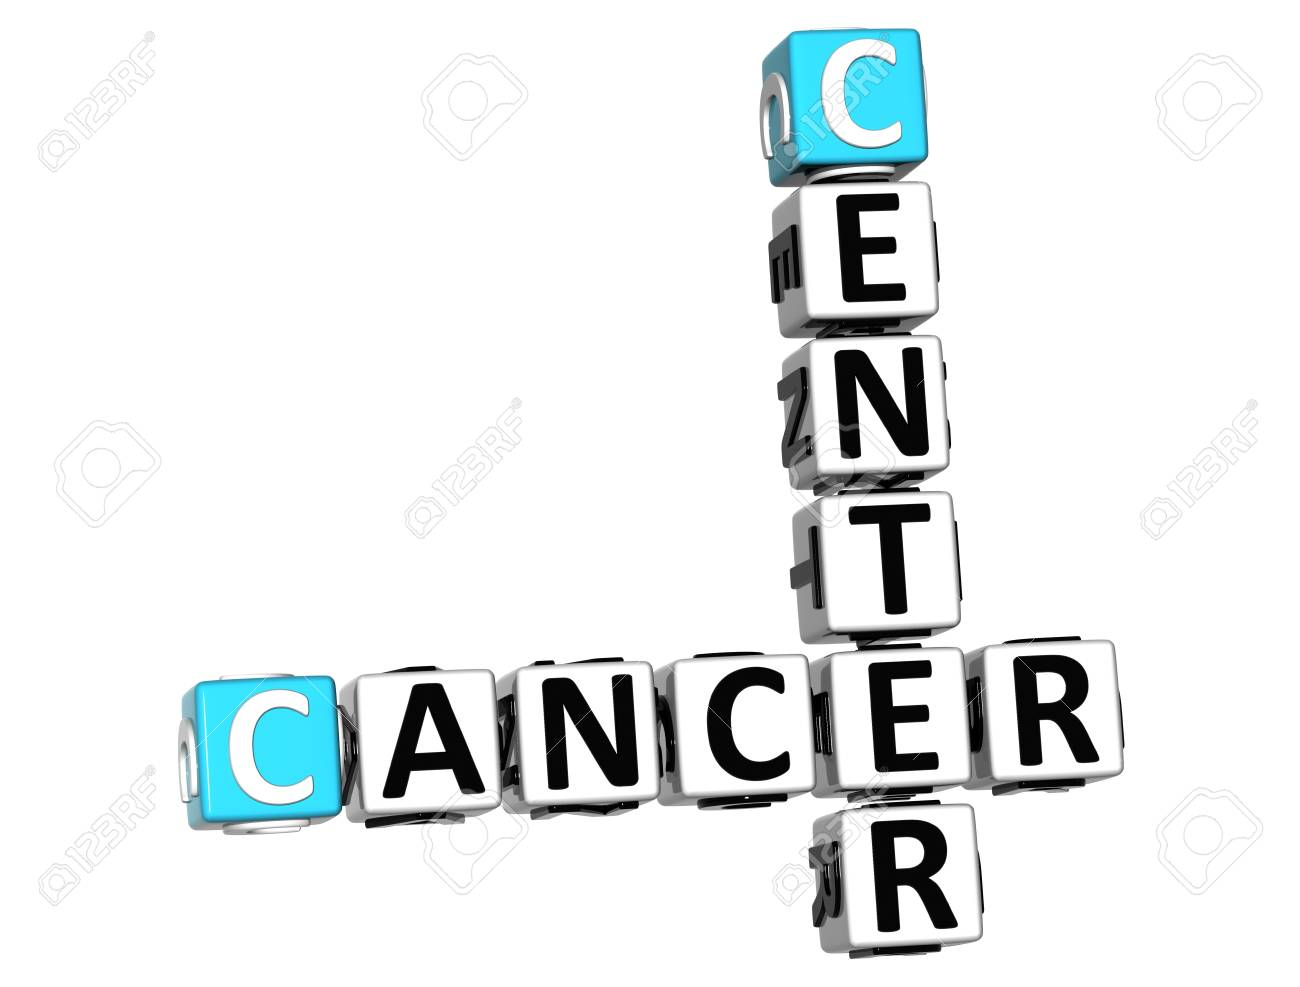 3D Cancer Center Crossword over white background Stock Photo - 12309040